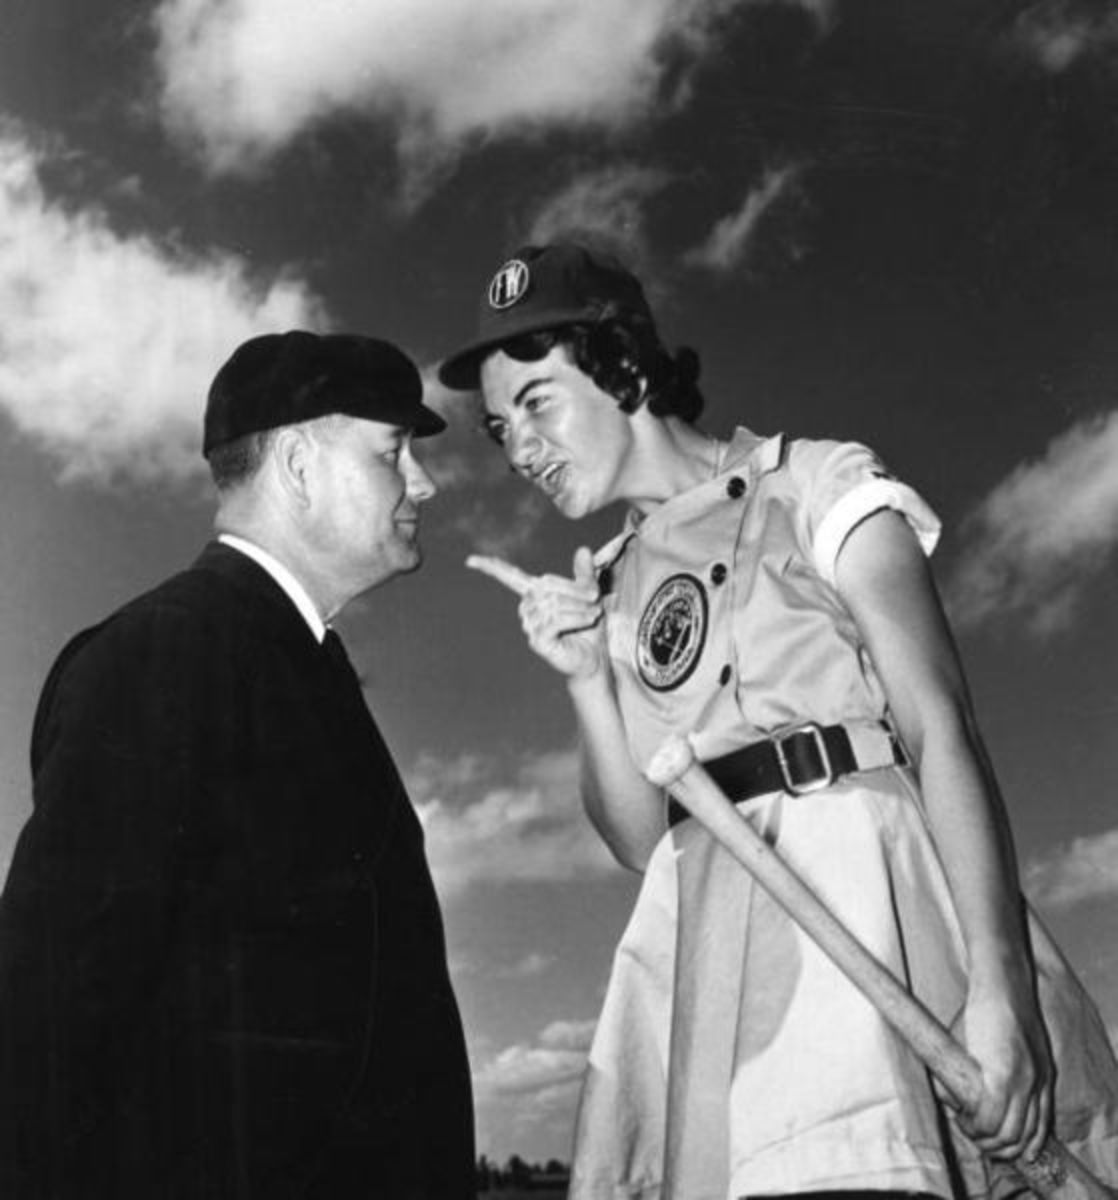 Fort Wayne Daisies player, Marie Wegman, of the All American Girls Professional Baseball League and umpire Norris Ward. April 1948.